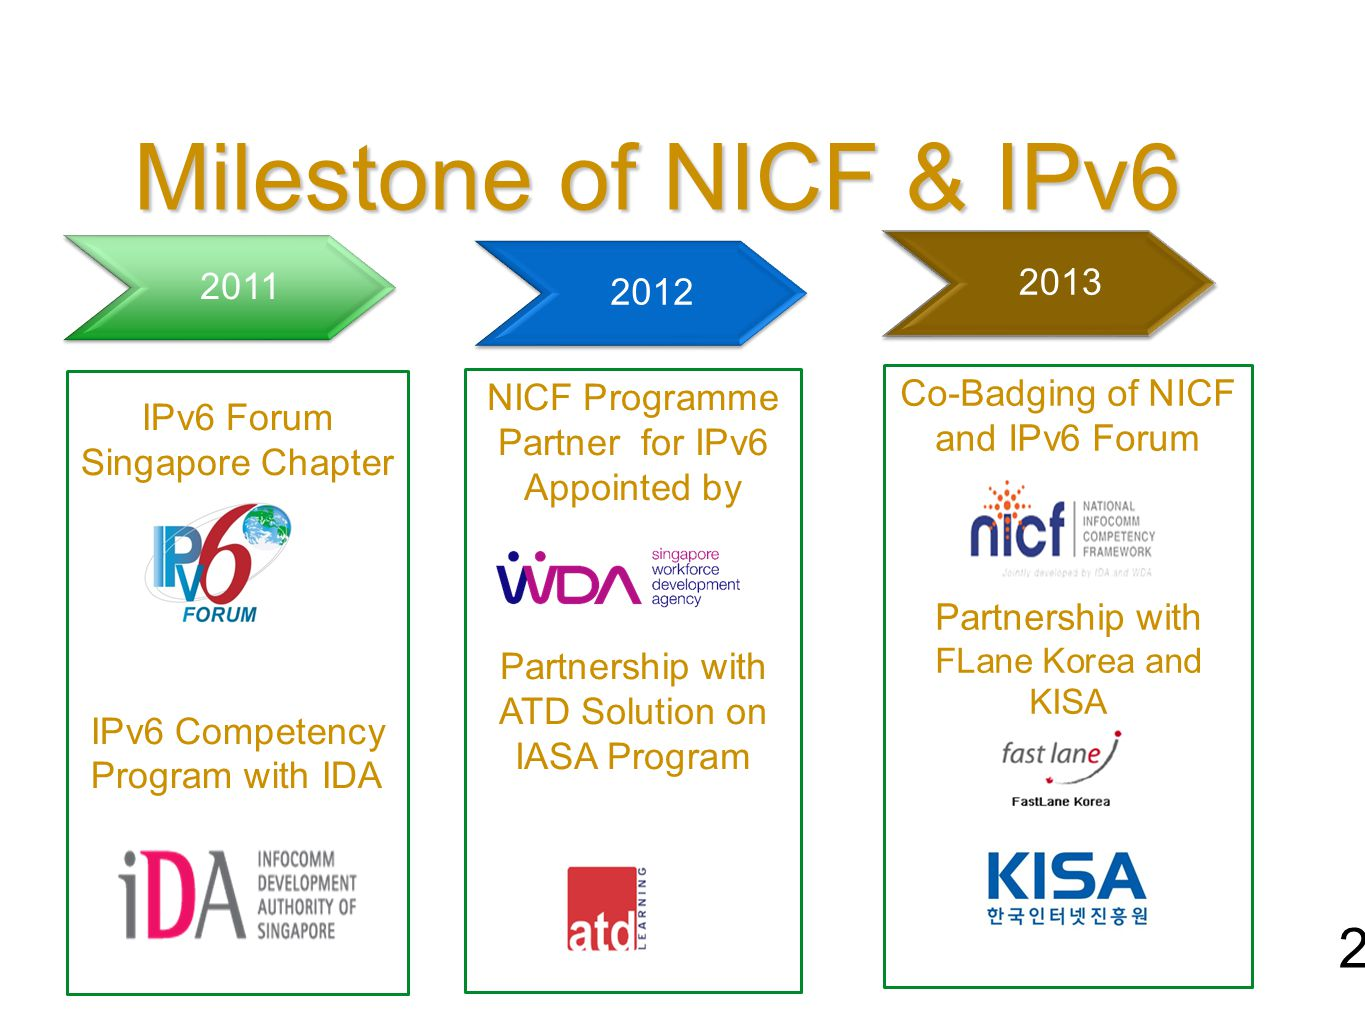 Milestone of NICF & IPv6 24 2011 2012 NICF Programme Partner for IPv6 Appointed by Partnership with ATD Solution on IASA Program IPv6 Forum Singapore Chapter IPv6 Competency Program with IDA 2013 Co-Badging of NICF and IPv6 Forum Partnership with FLane Korea and KISA